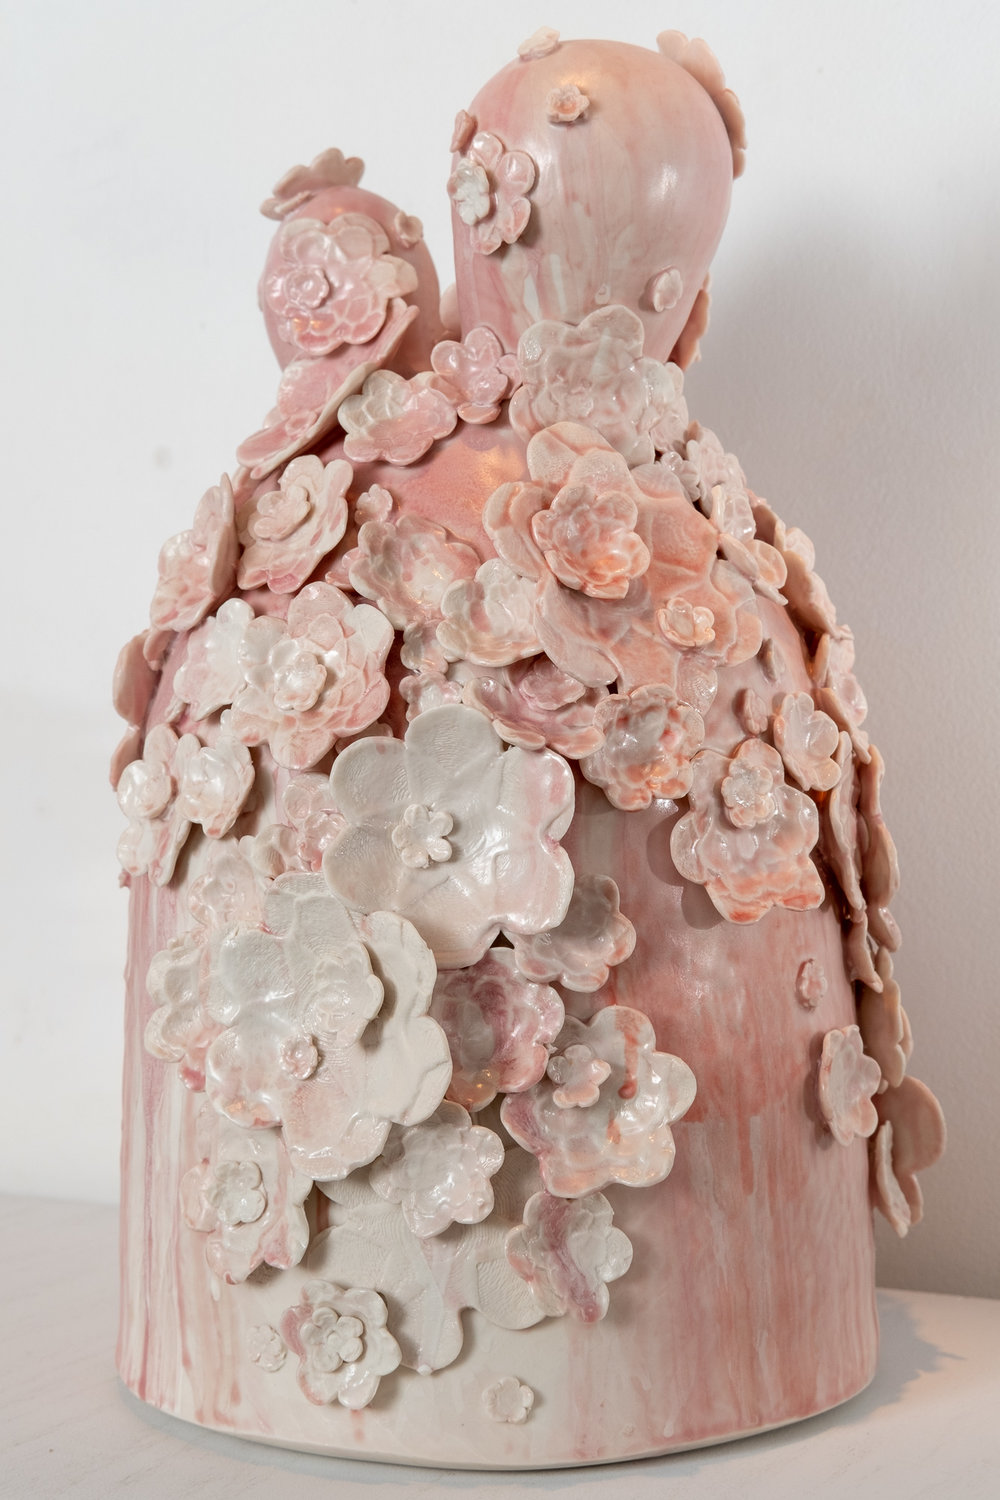 Hanazume (Packed Florals) with Three Ears   Wheel-thrown and handbuilt porcelain with press-molded sprigs from three-dimensional model prints, glaze  17 x 9.5 x 9.5 inches VZI 009G